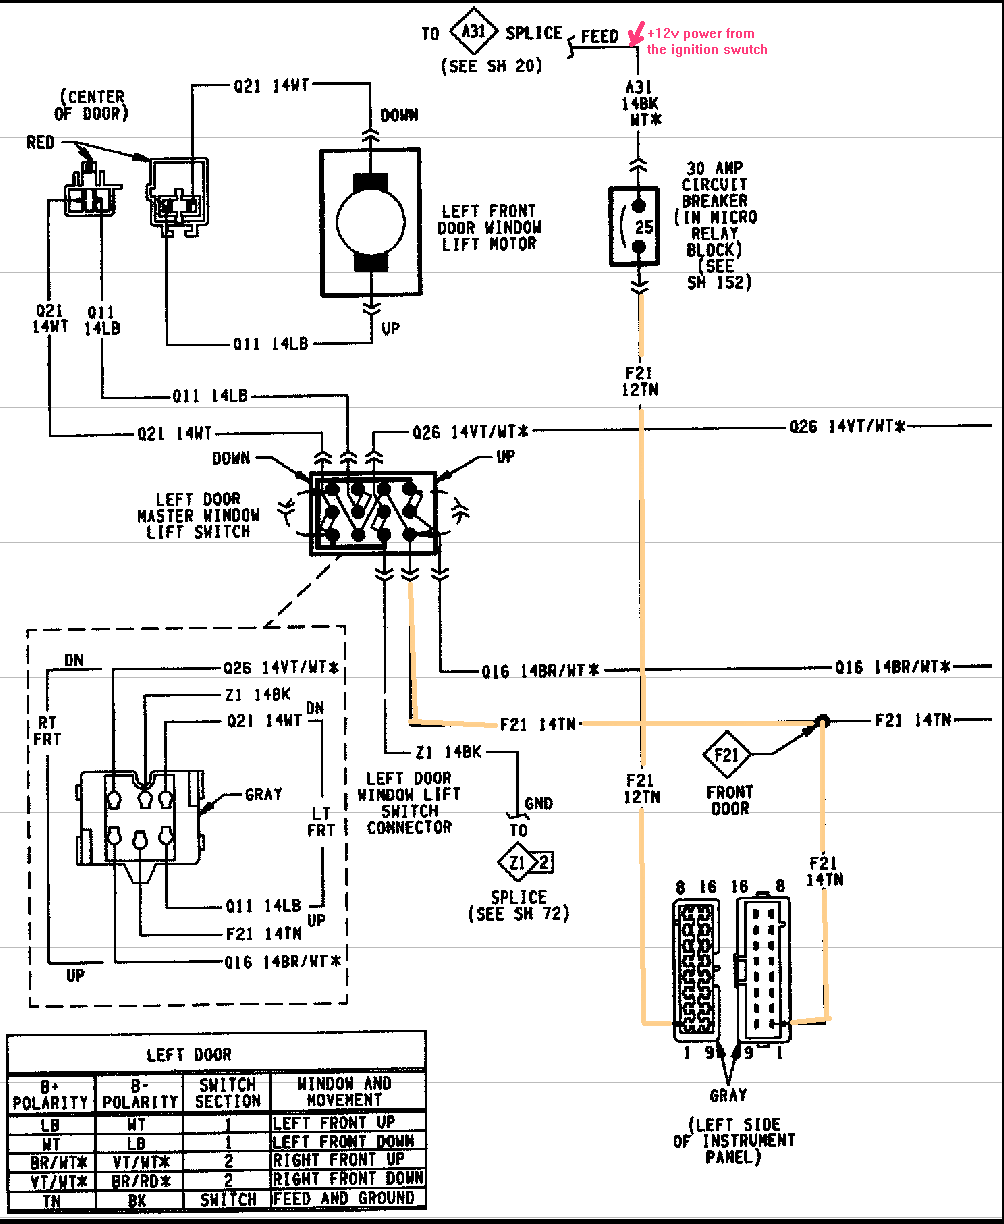 98 plymouth Power Window Switch Wiring Diagram | 1994 Plymouth Grand Voyager  power windows will not operate.